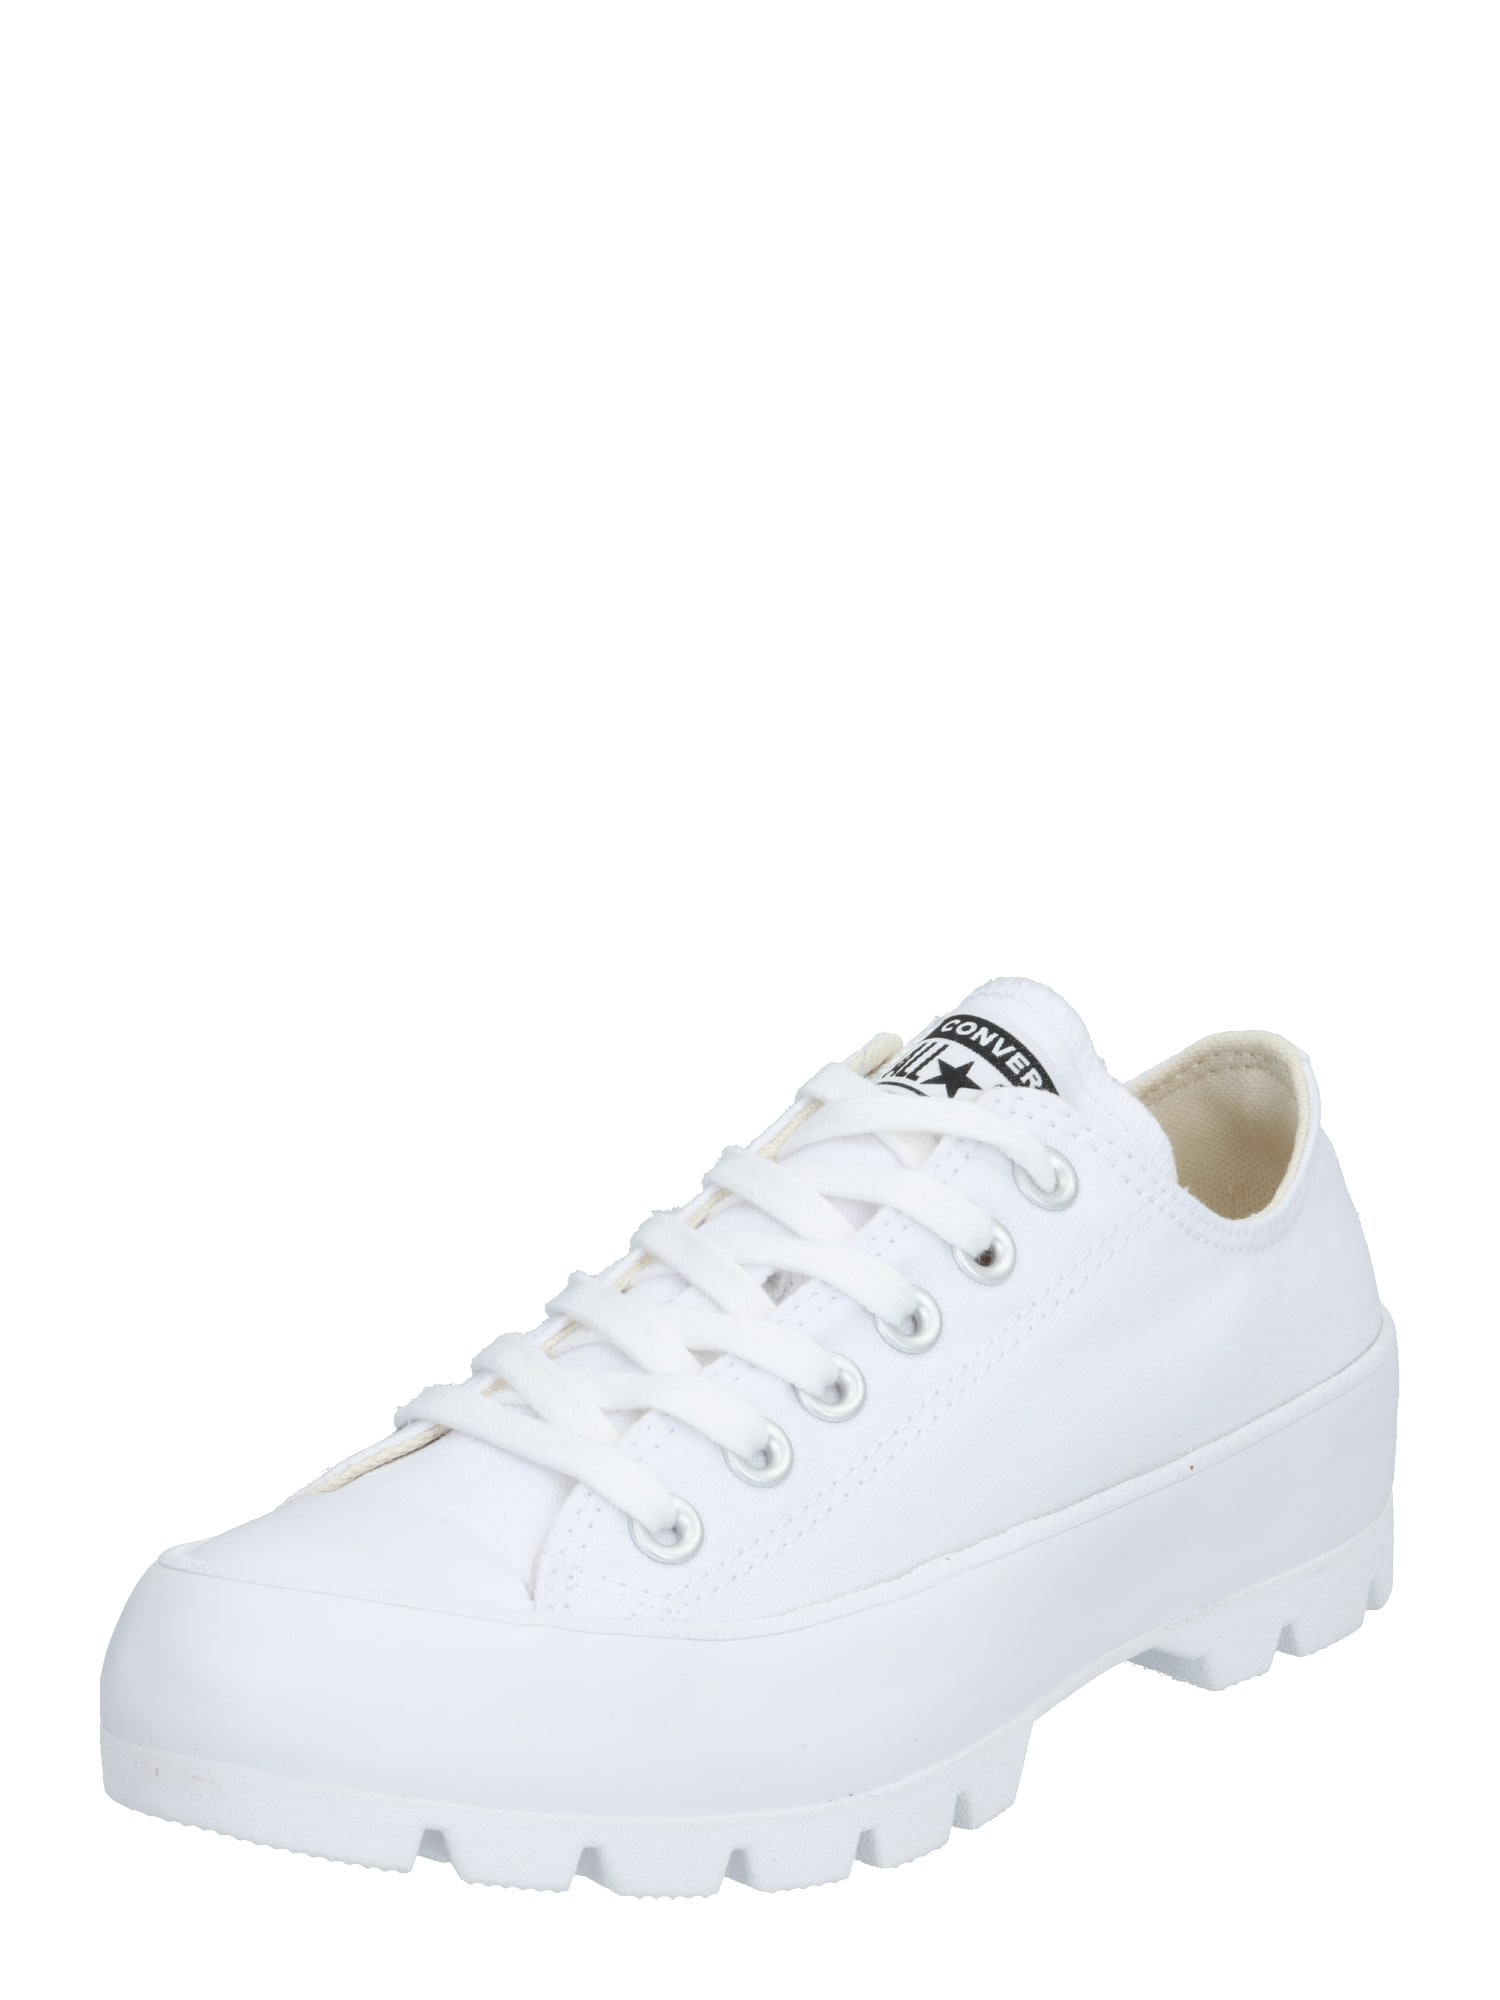 CONVERSE Sportbačiai be auliuko 'CHUCK TAYLOR ALL STAR LUGGED - OX' balta